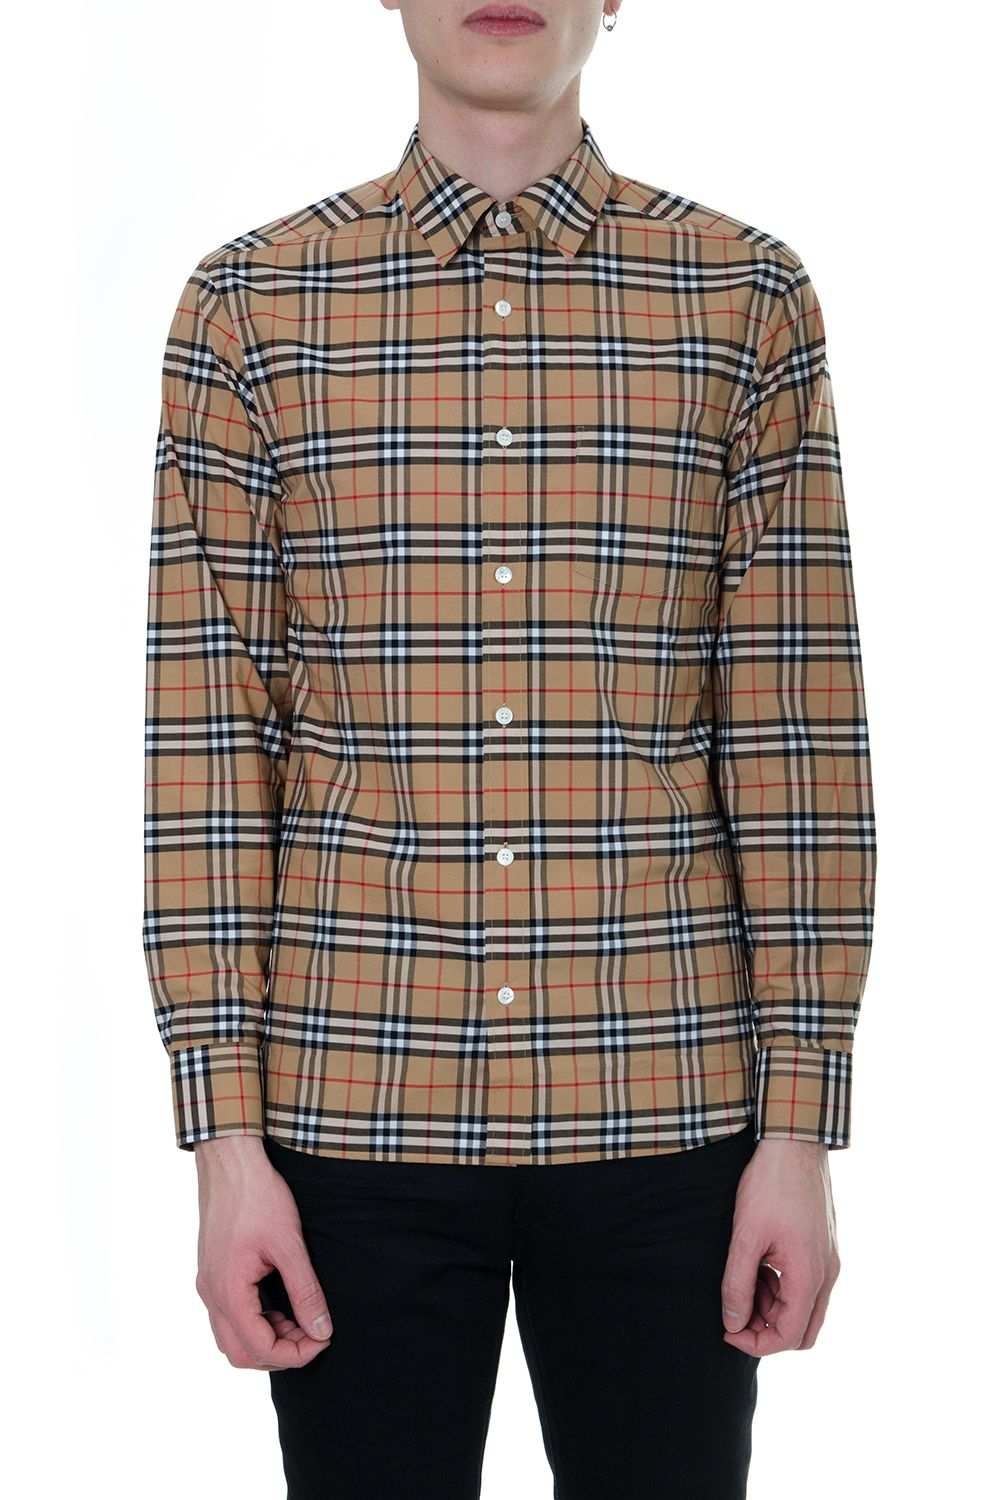 Camel Cotton Checked Burberry 10826322 Shirt SzpjMLqUGV